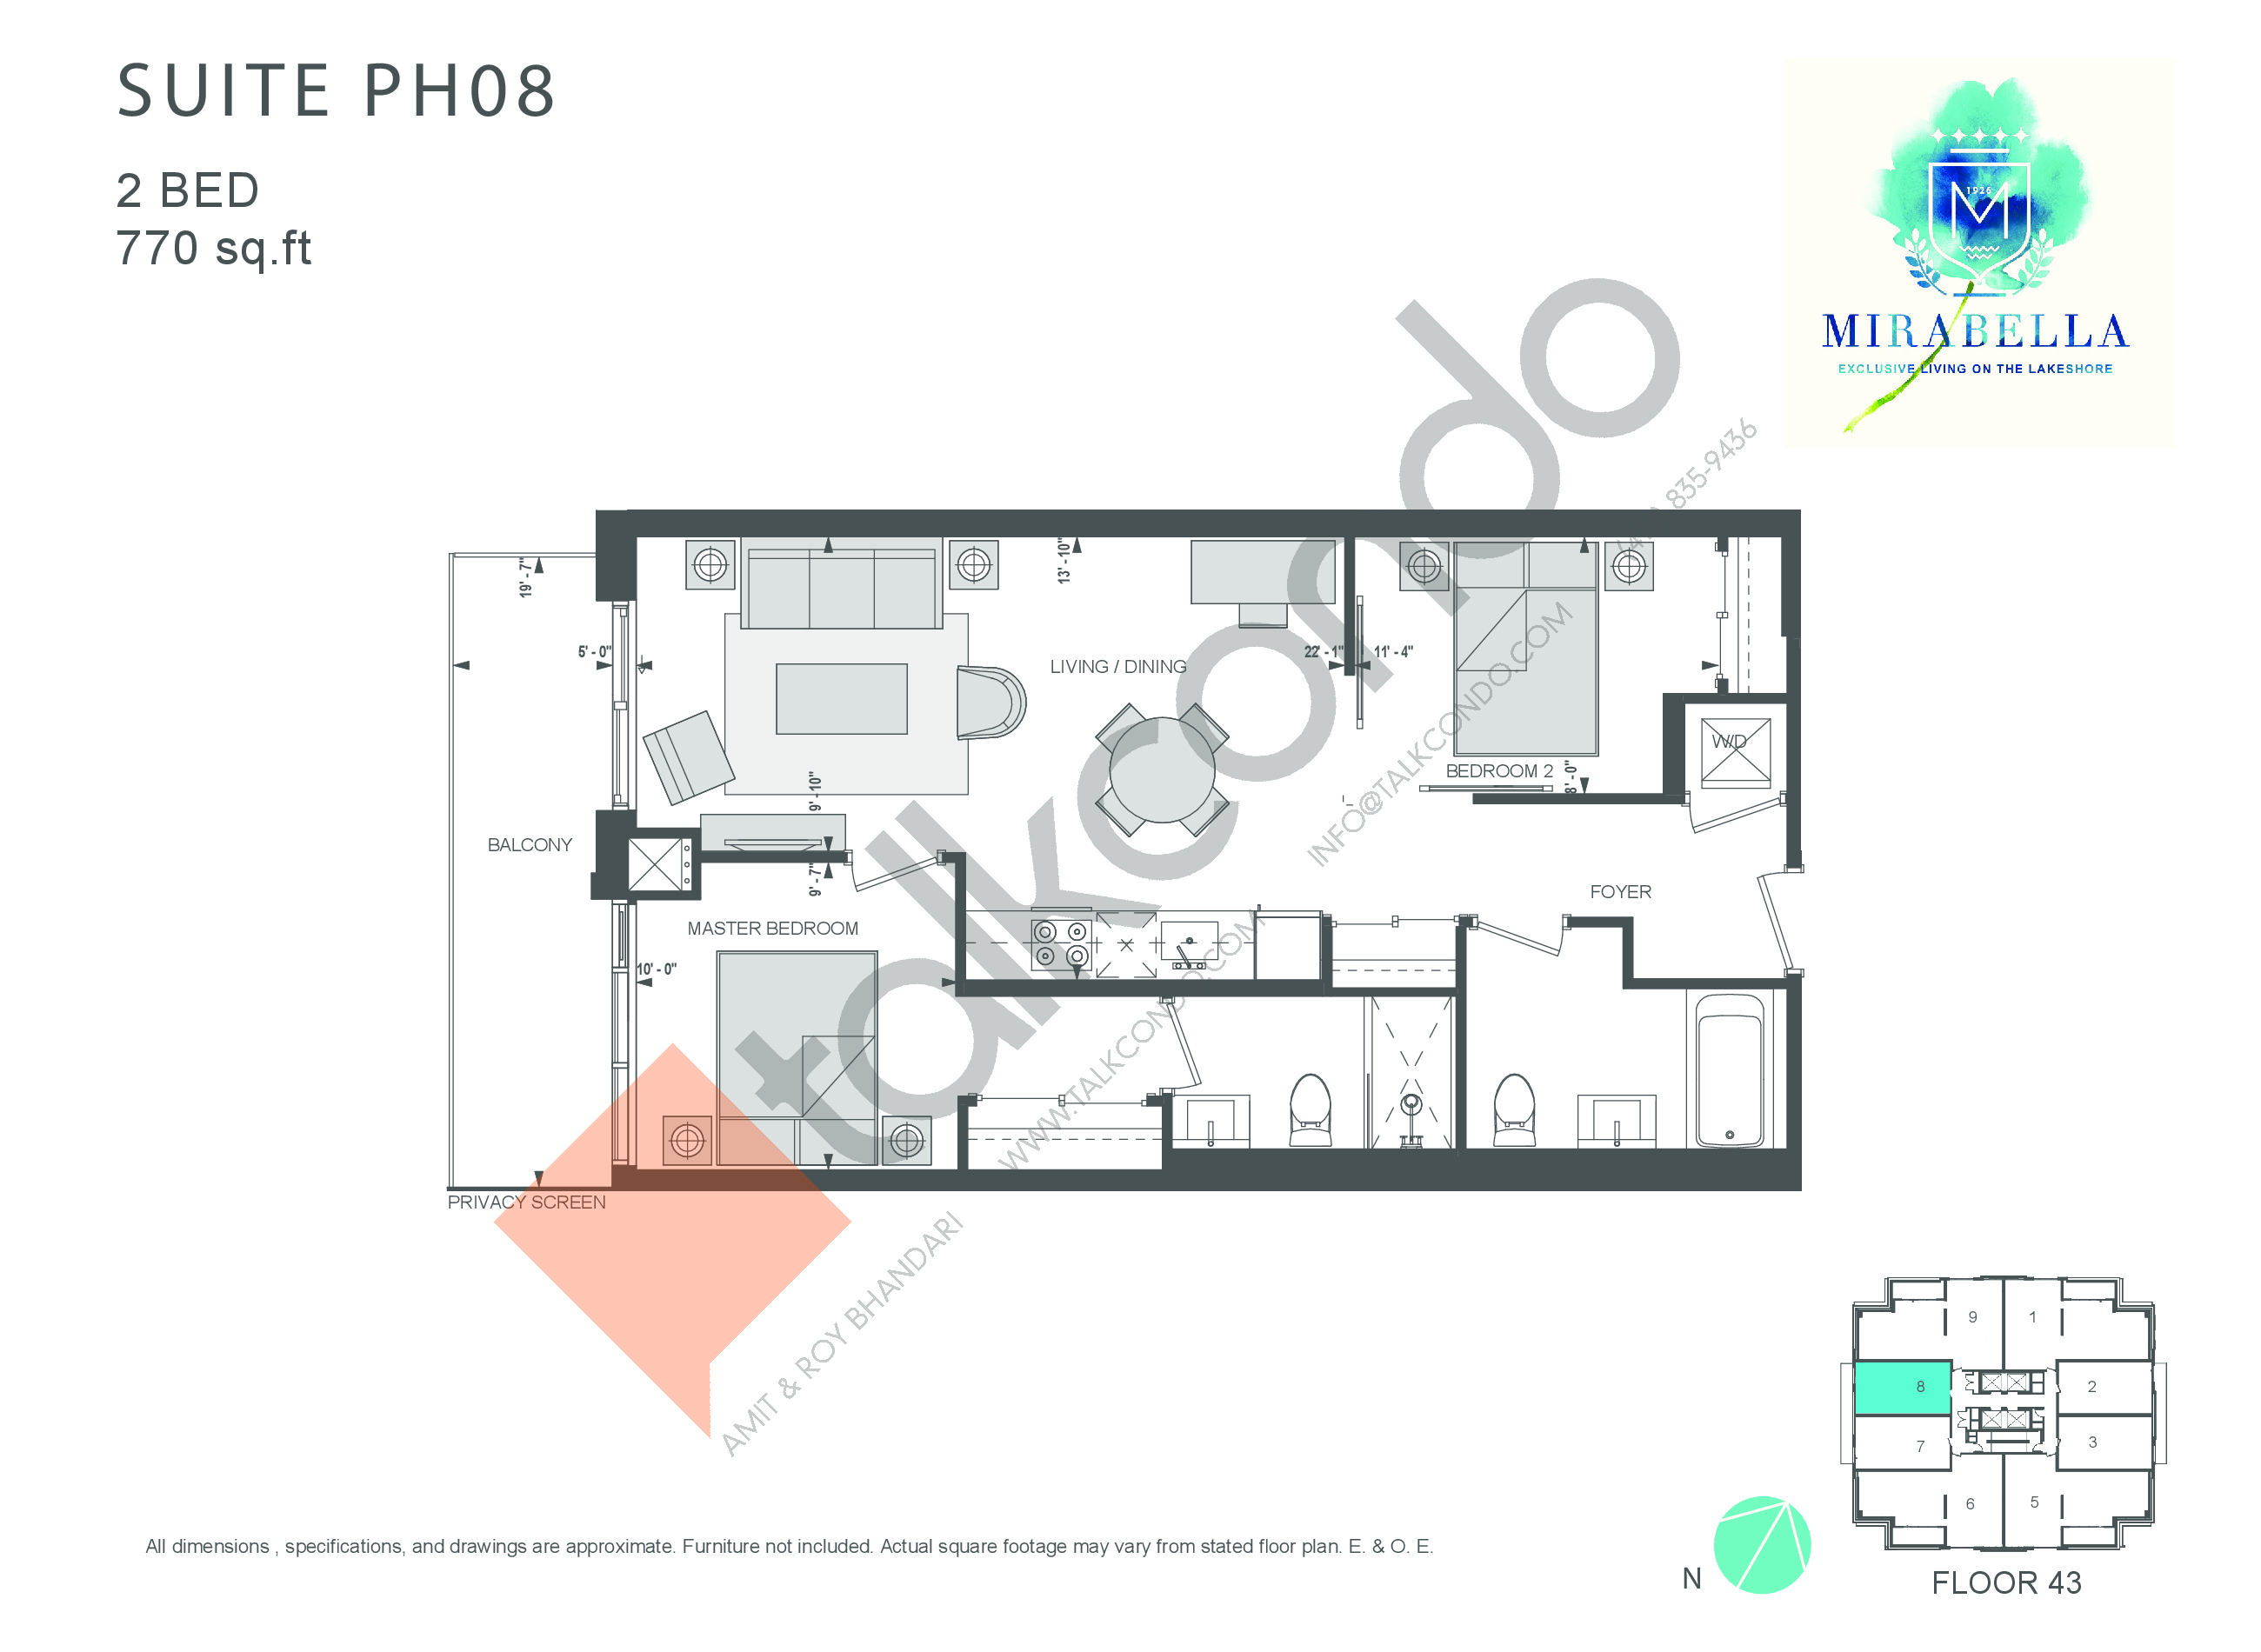 Suite PH08 Floor Plan at Mirabella Luxury Condos East Tower - 770 sq.ft